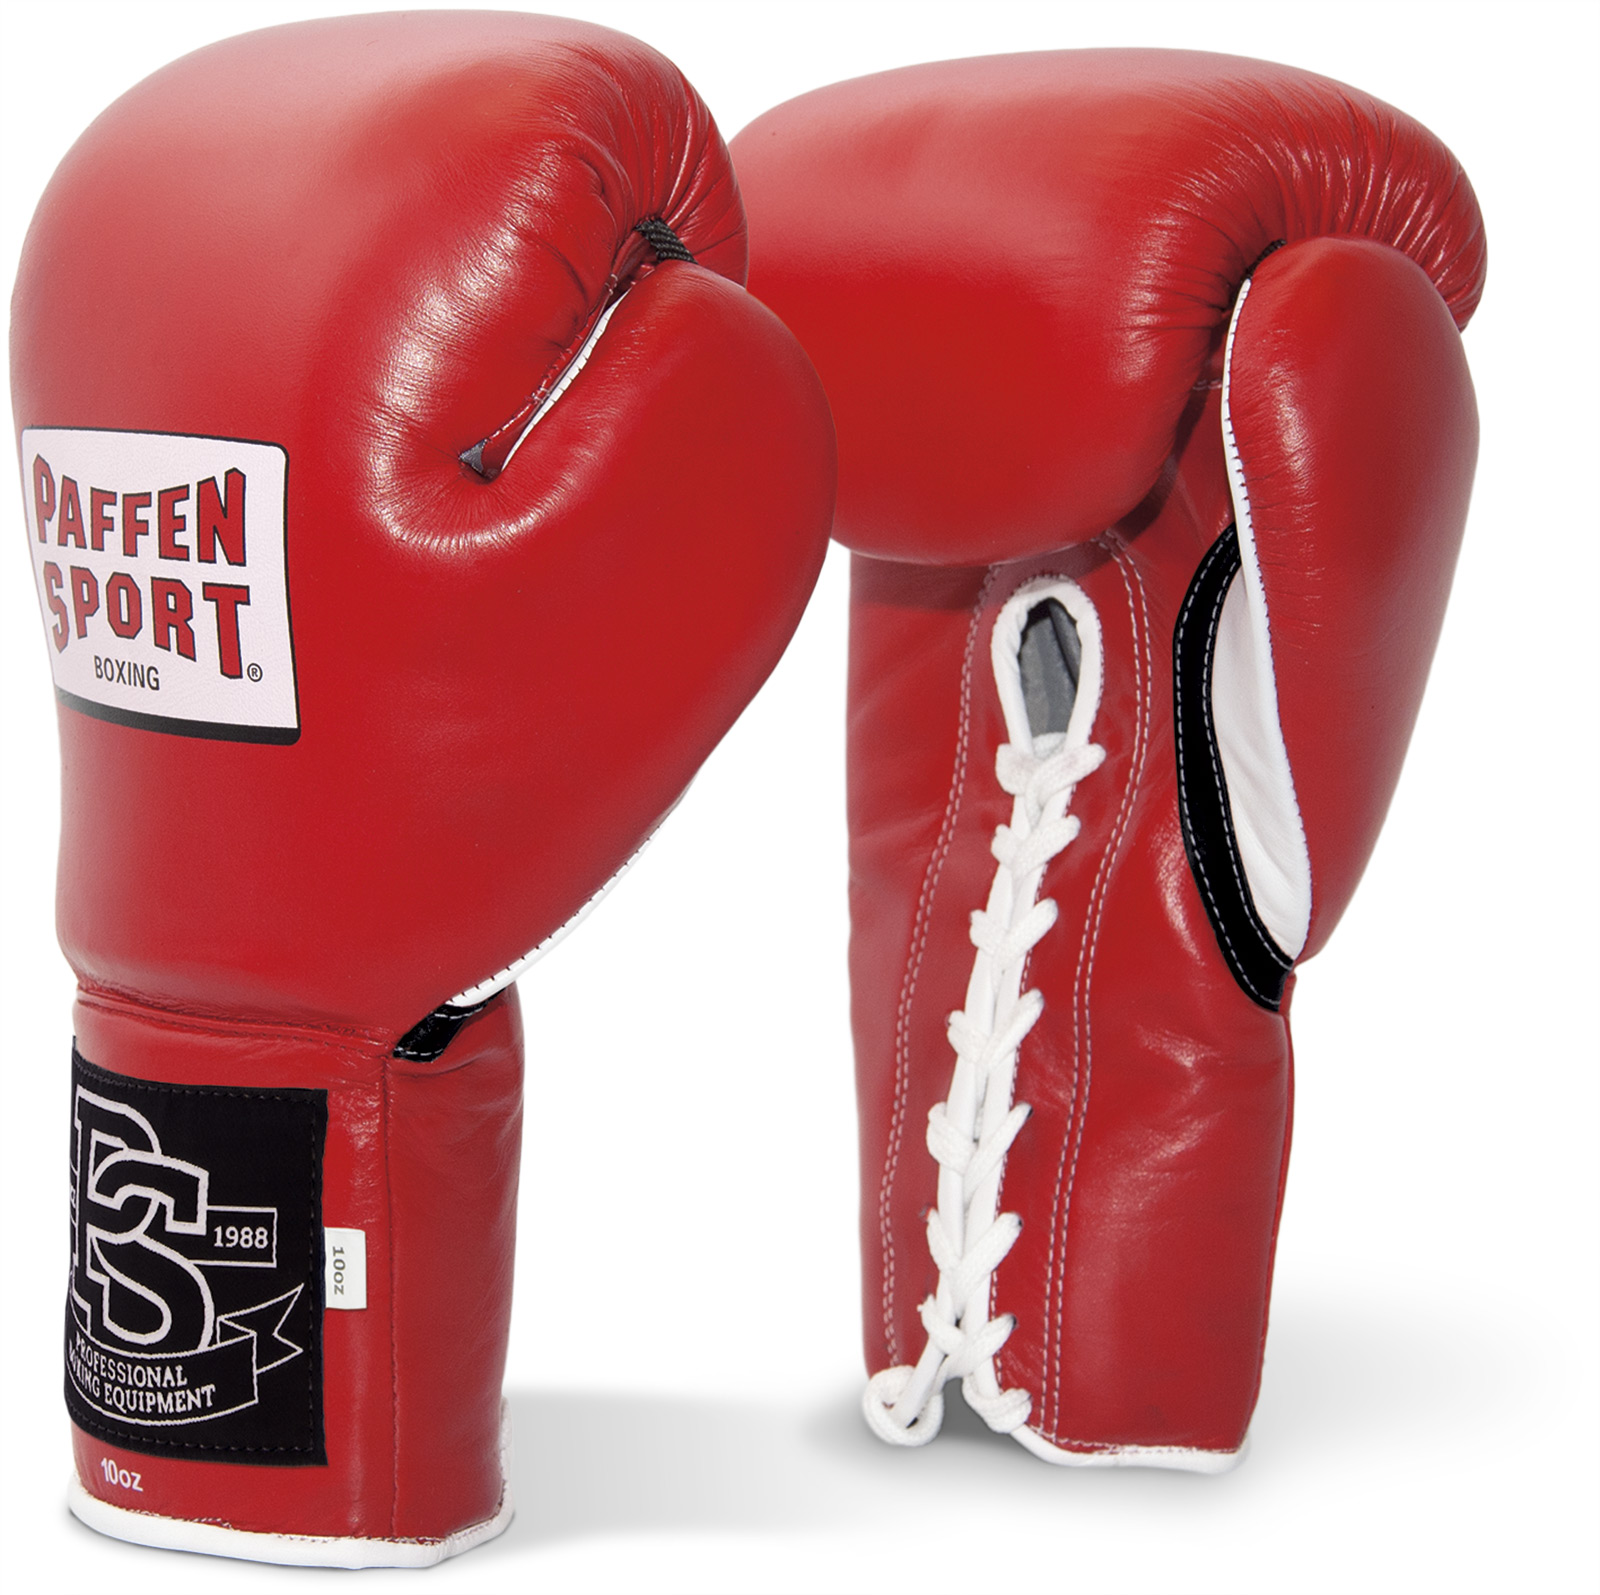 Paffen Sport Gloves Review: Paffen Sport Contest Professional Boxing Gloves Red